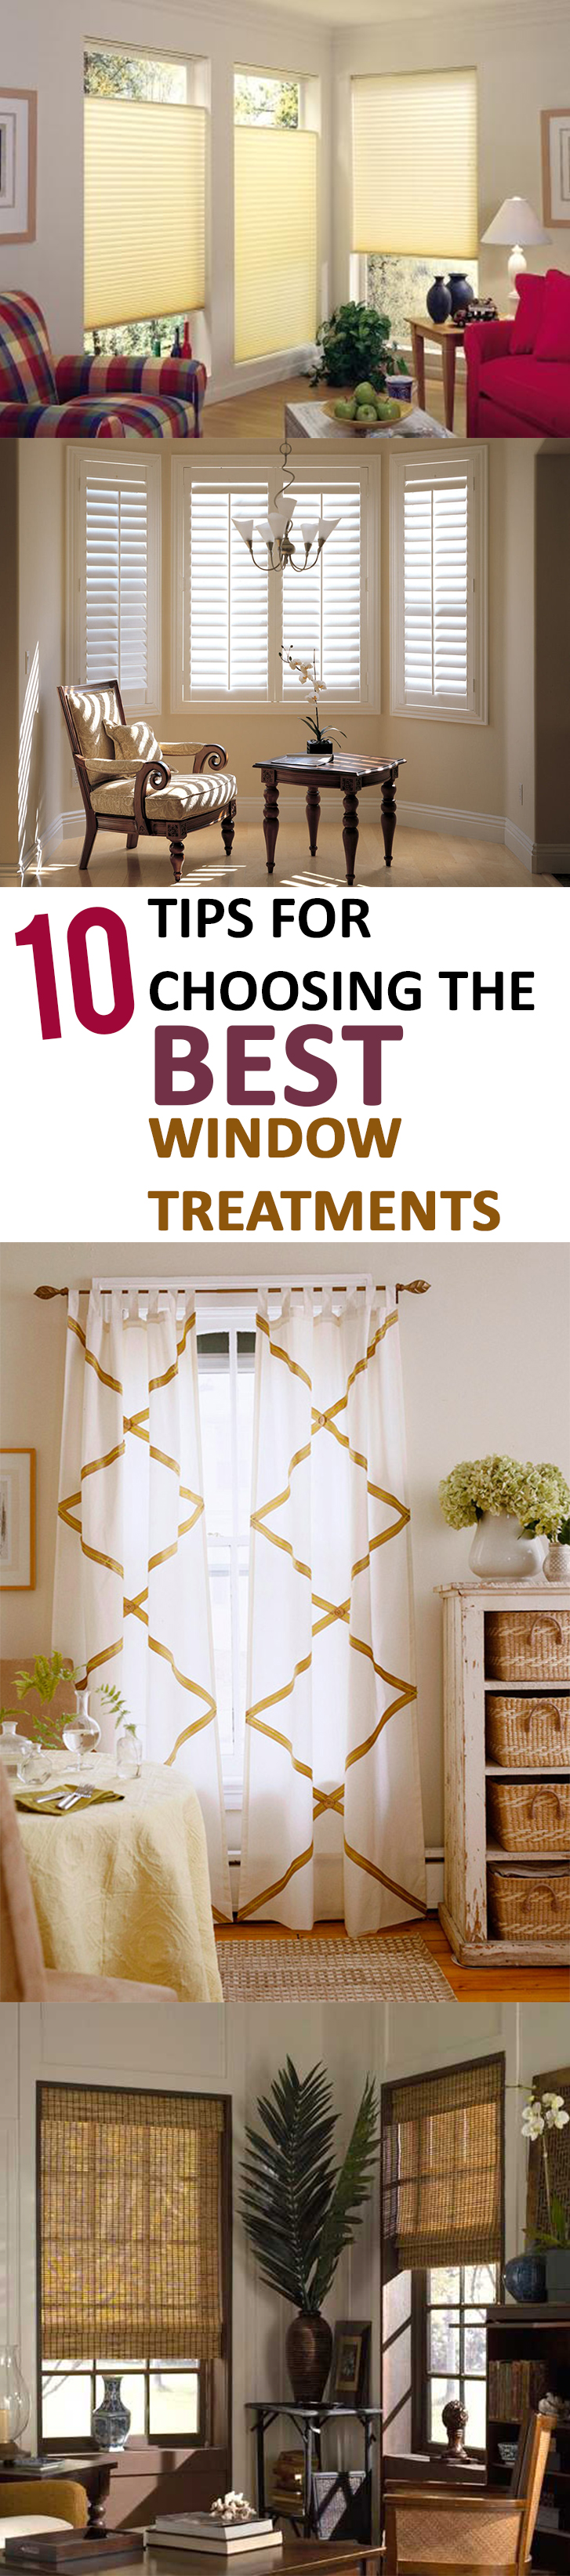 10 tips for choosing the best window treatments - Tips for choosing the right blinds for the rooms ...